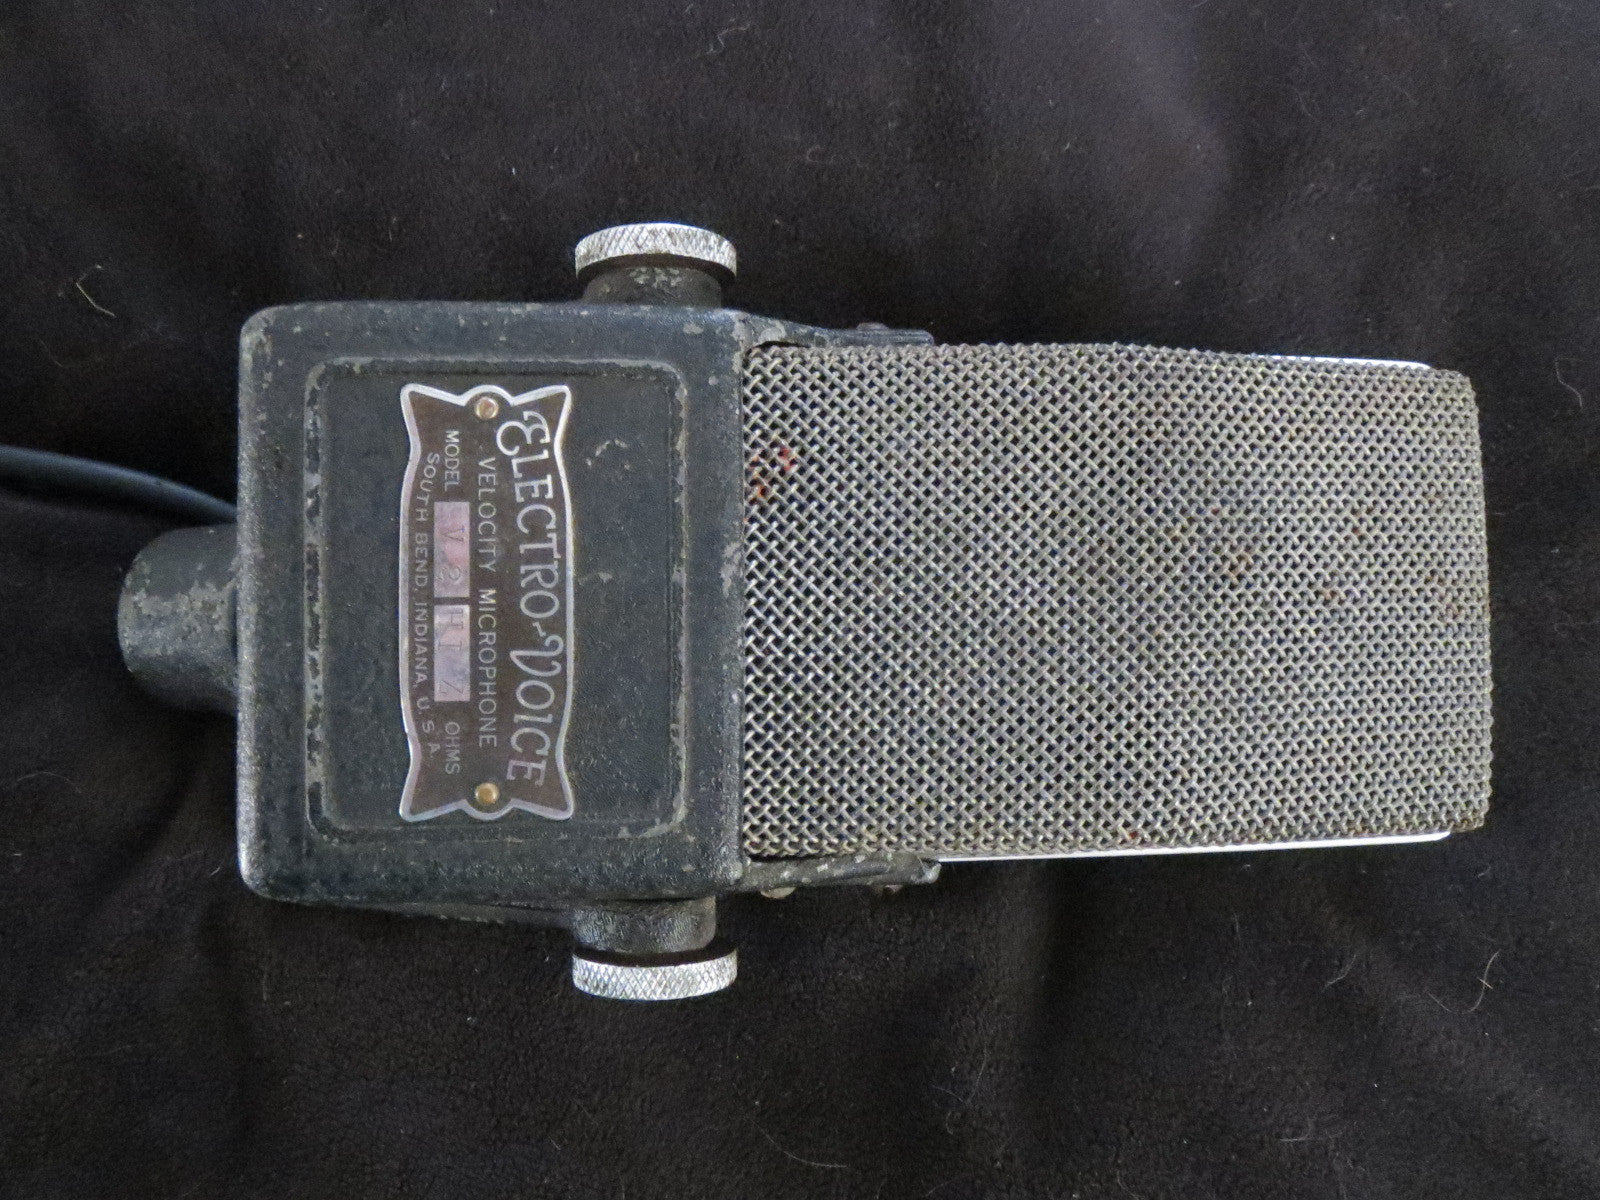 EV ELECTROVOICE V-2 VINTAGE RIBBON MICROPHONE W/YOKE & ATTACHED CABLE